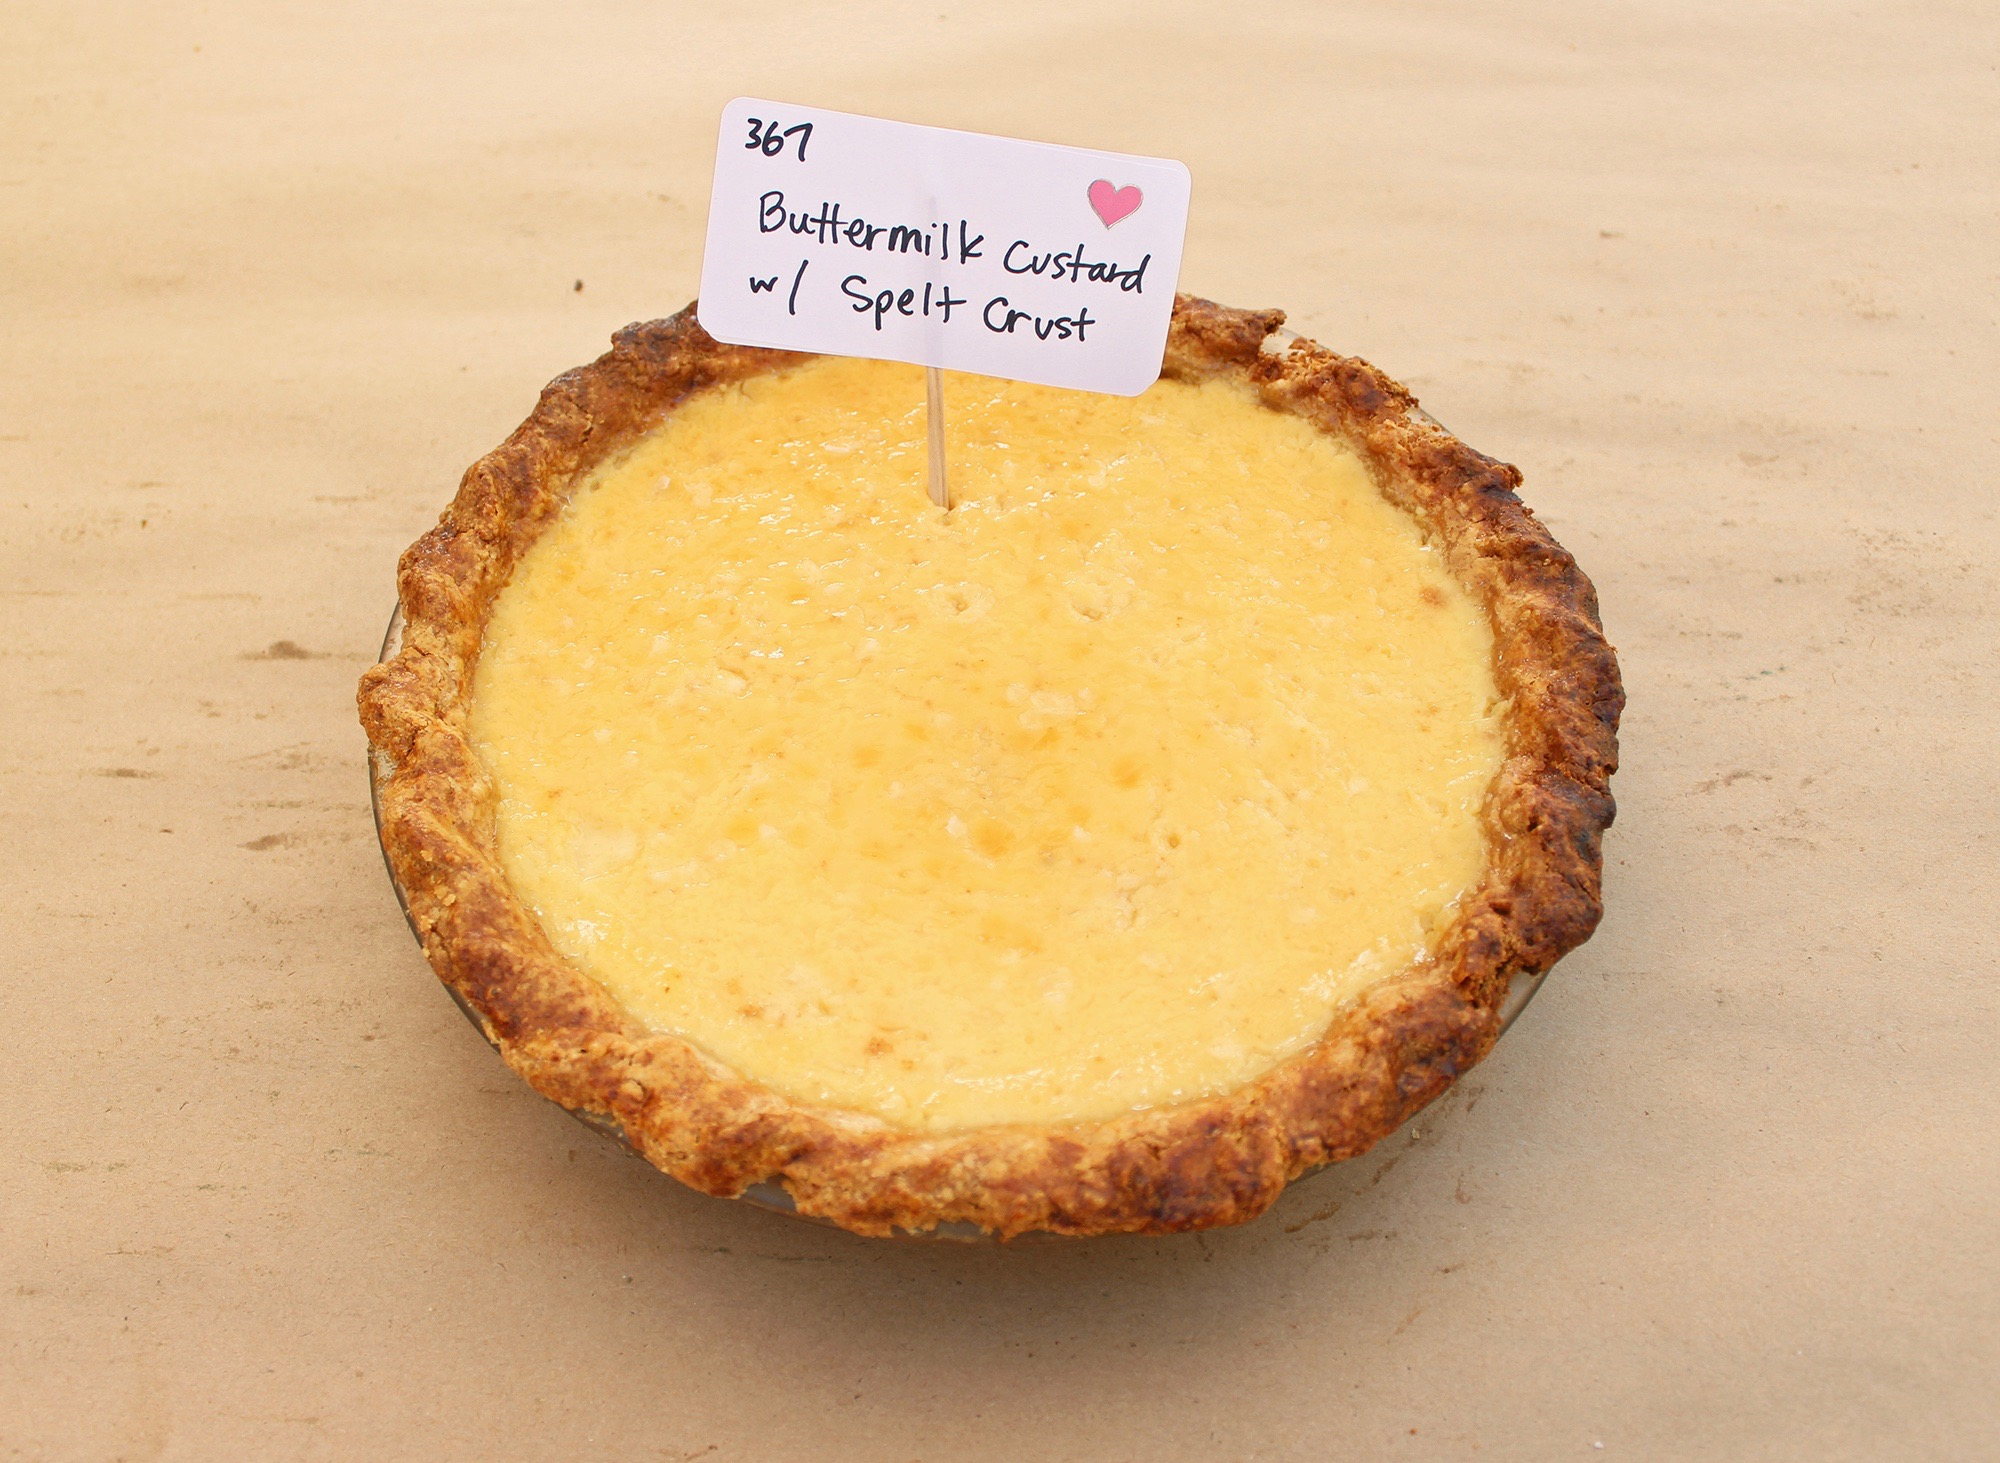 custard-2-367-buttermilk-custard-with-spelt-crust-by-emily-wright